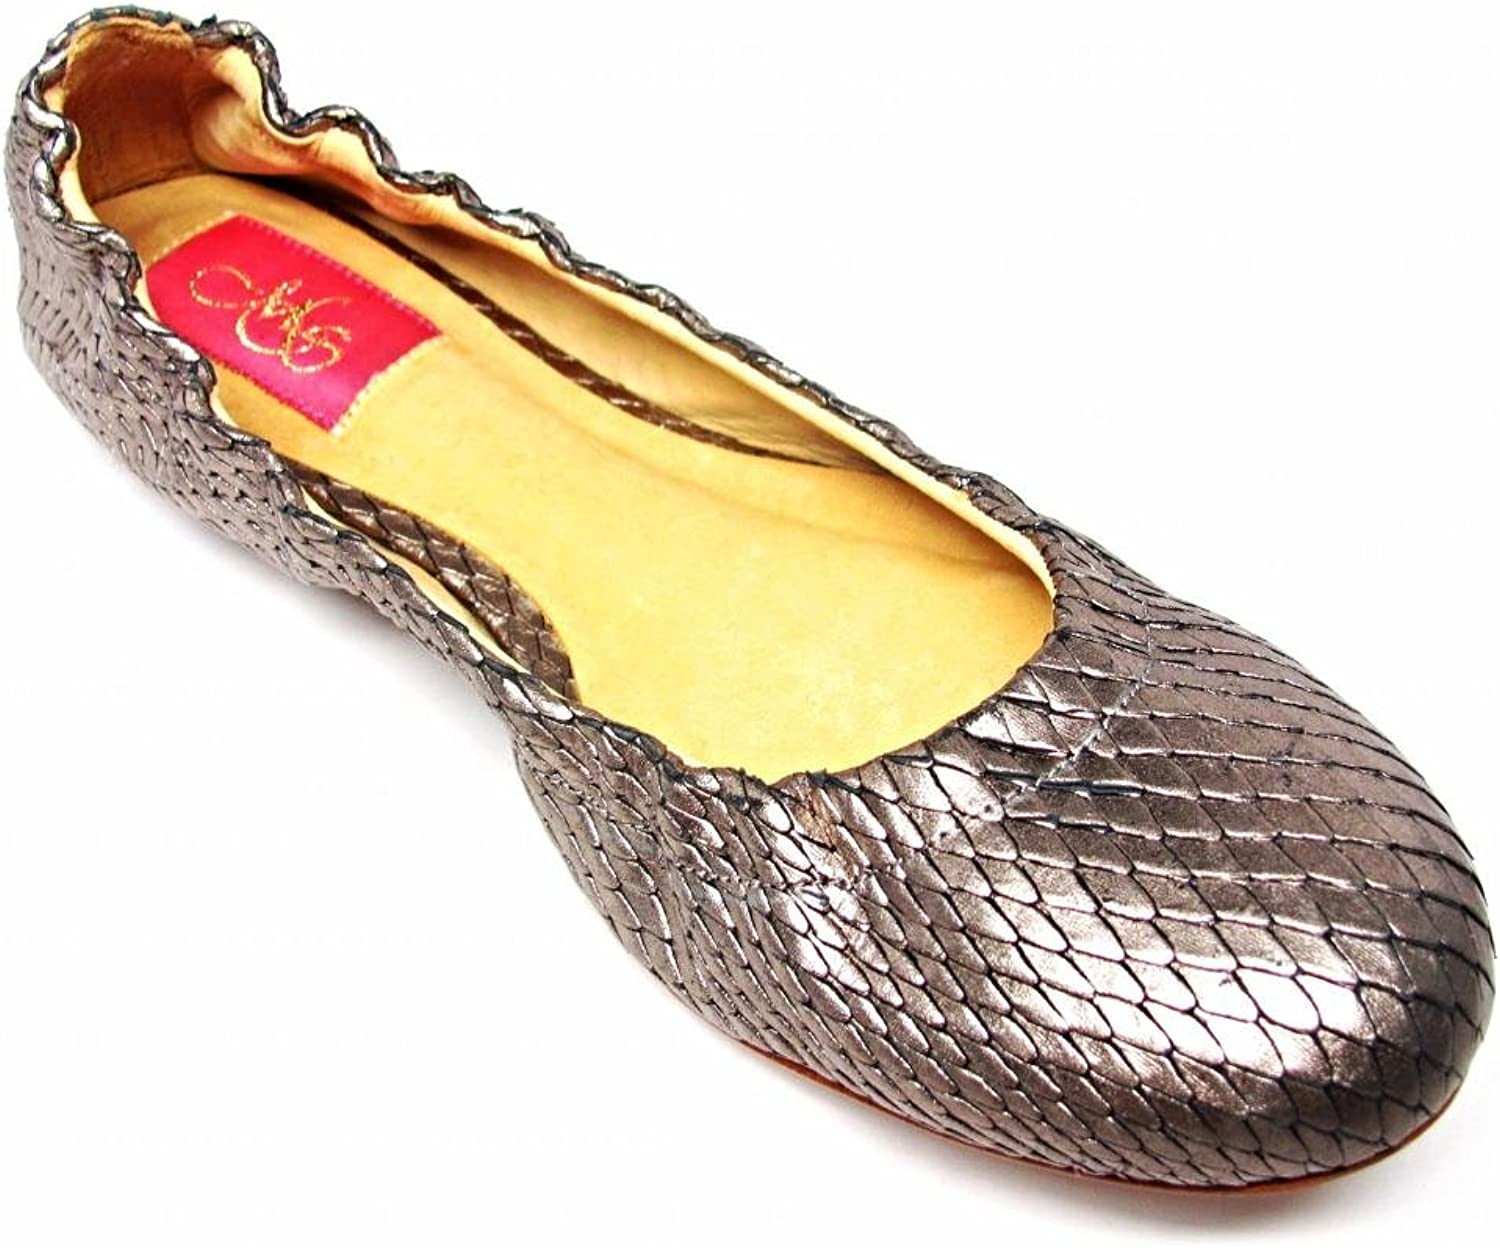 Monticello shoes Amerie Metallic gold Leather Ballerina Ballet Slip on Flats Size 7